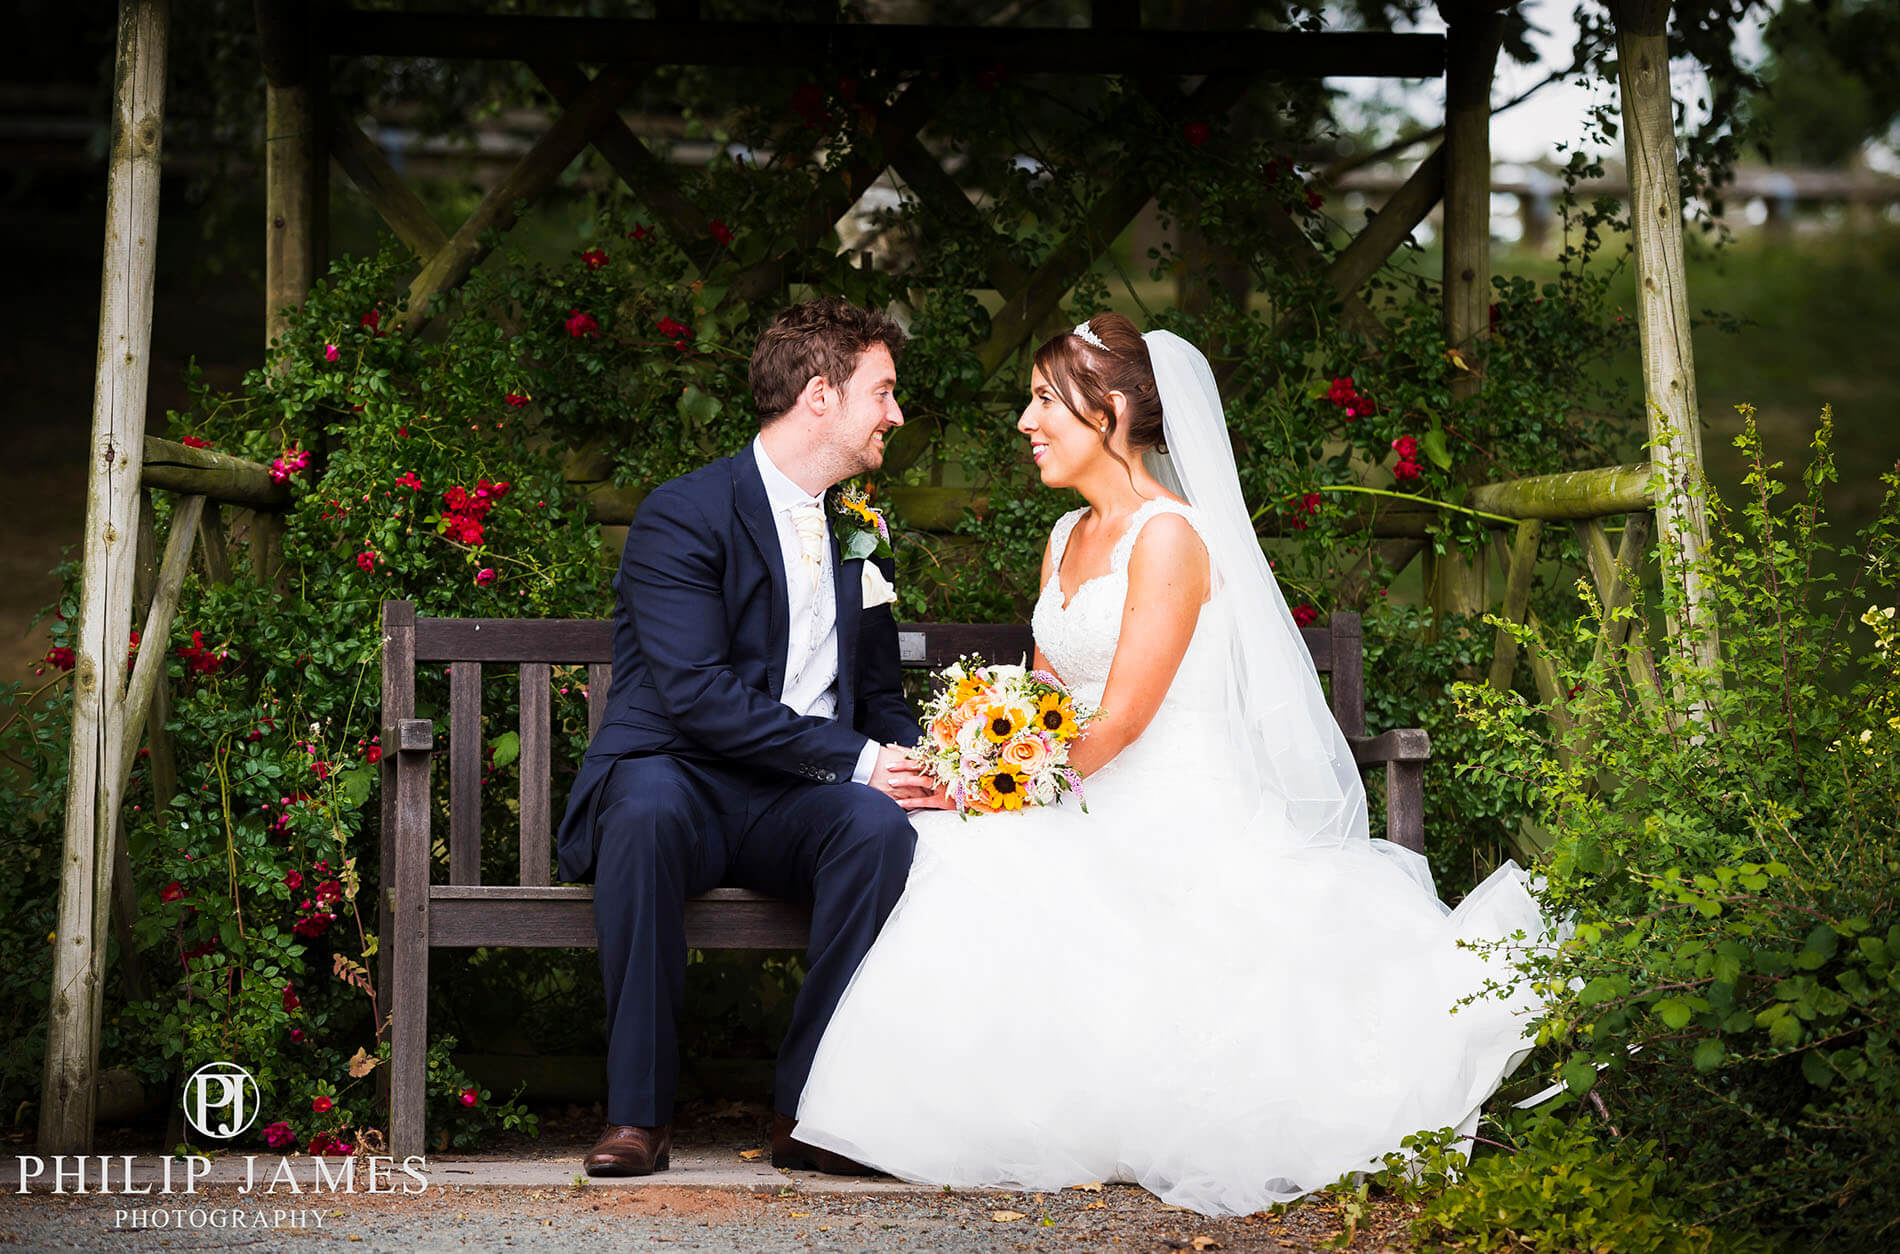 Birmingham Wedding Photographer - Philip James Photography based in Solihull (21 of 68)